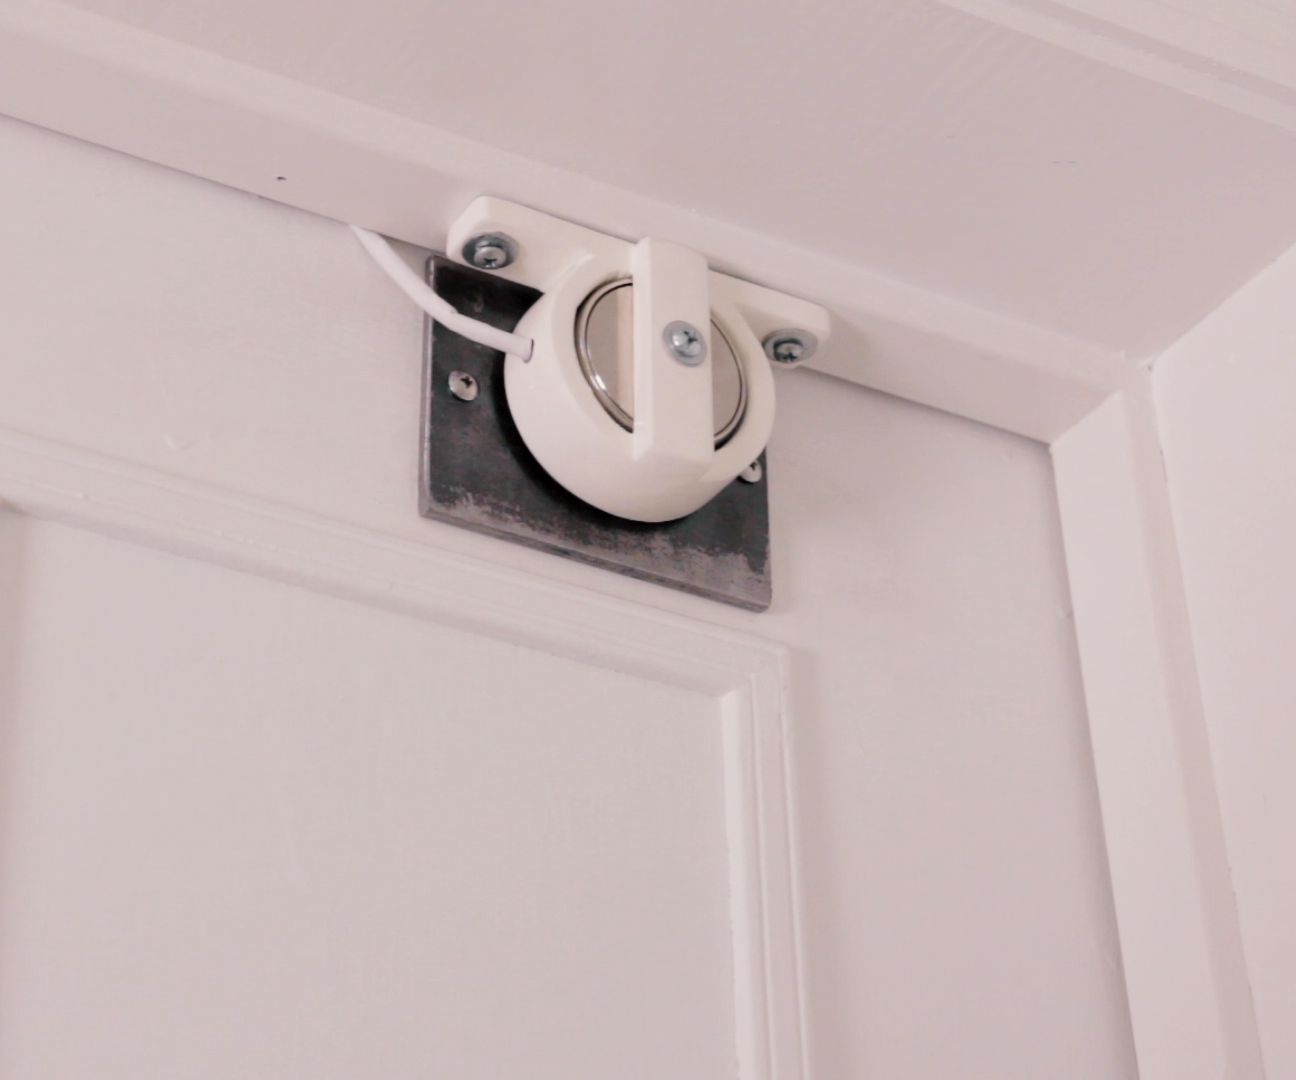 Magnetic Smart Lock With Secret Knock, IR Sensor, & Web App